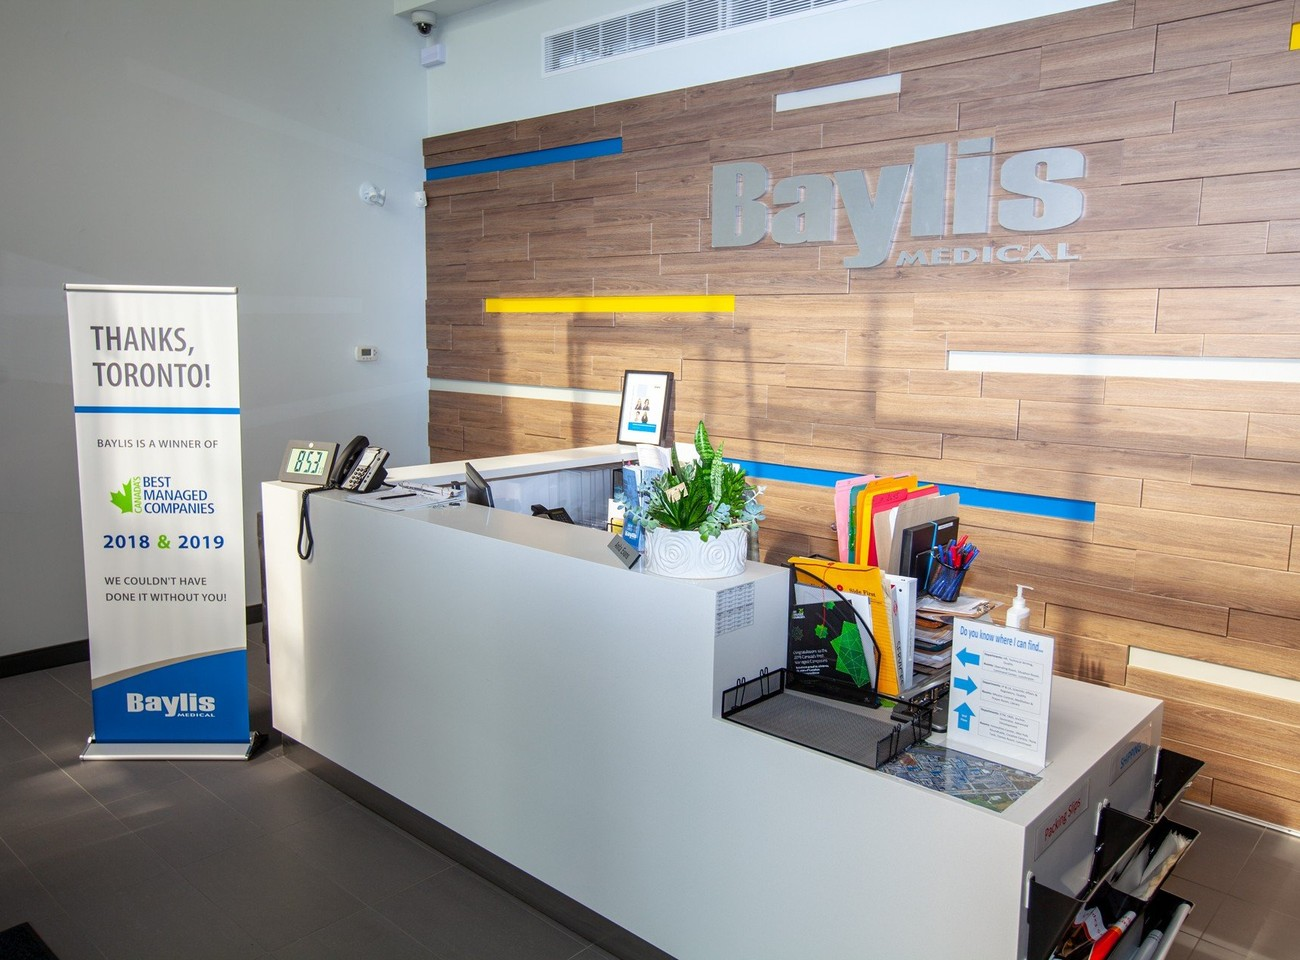 Baylis Medical Careers